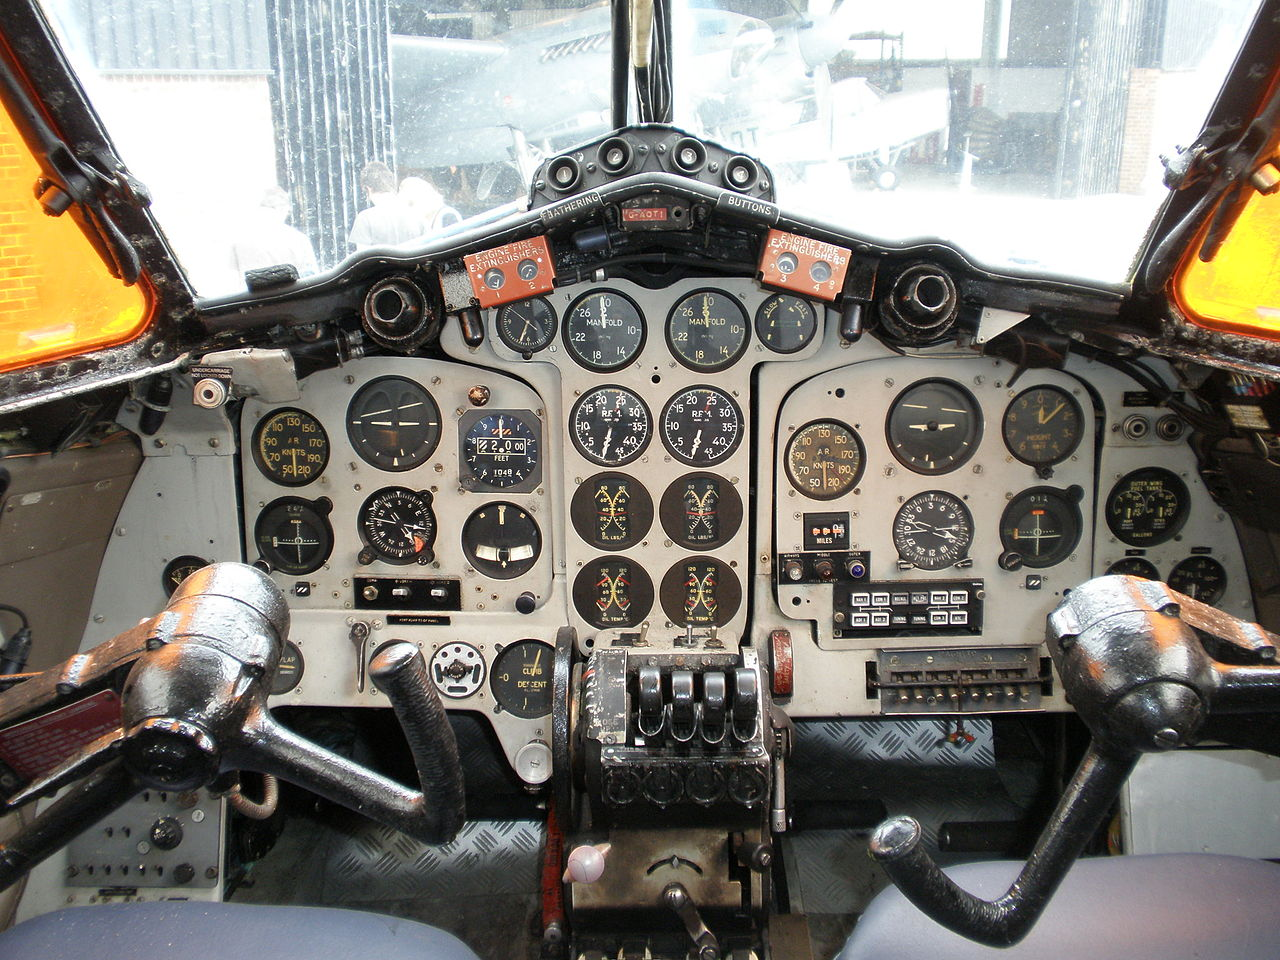 De Havilland DH-114 Heron - Cockpit